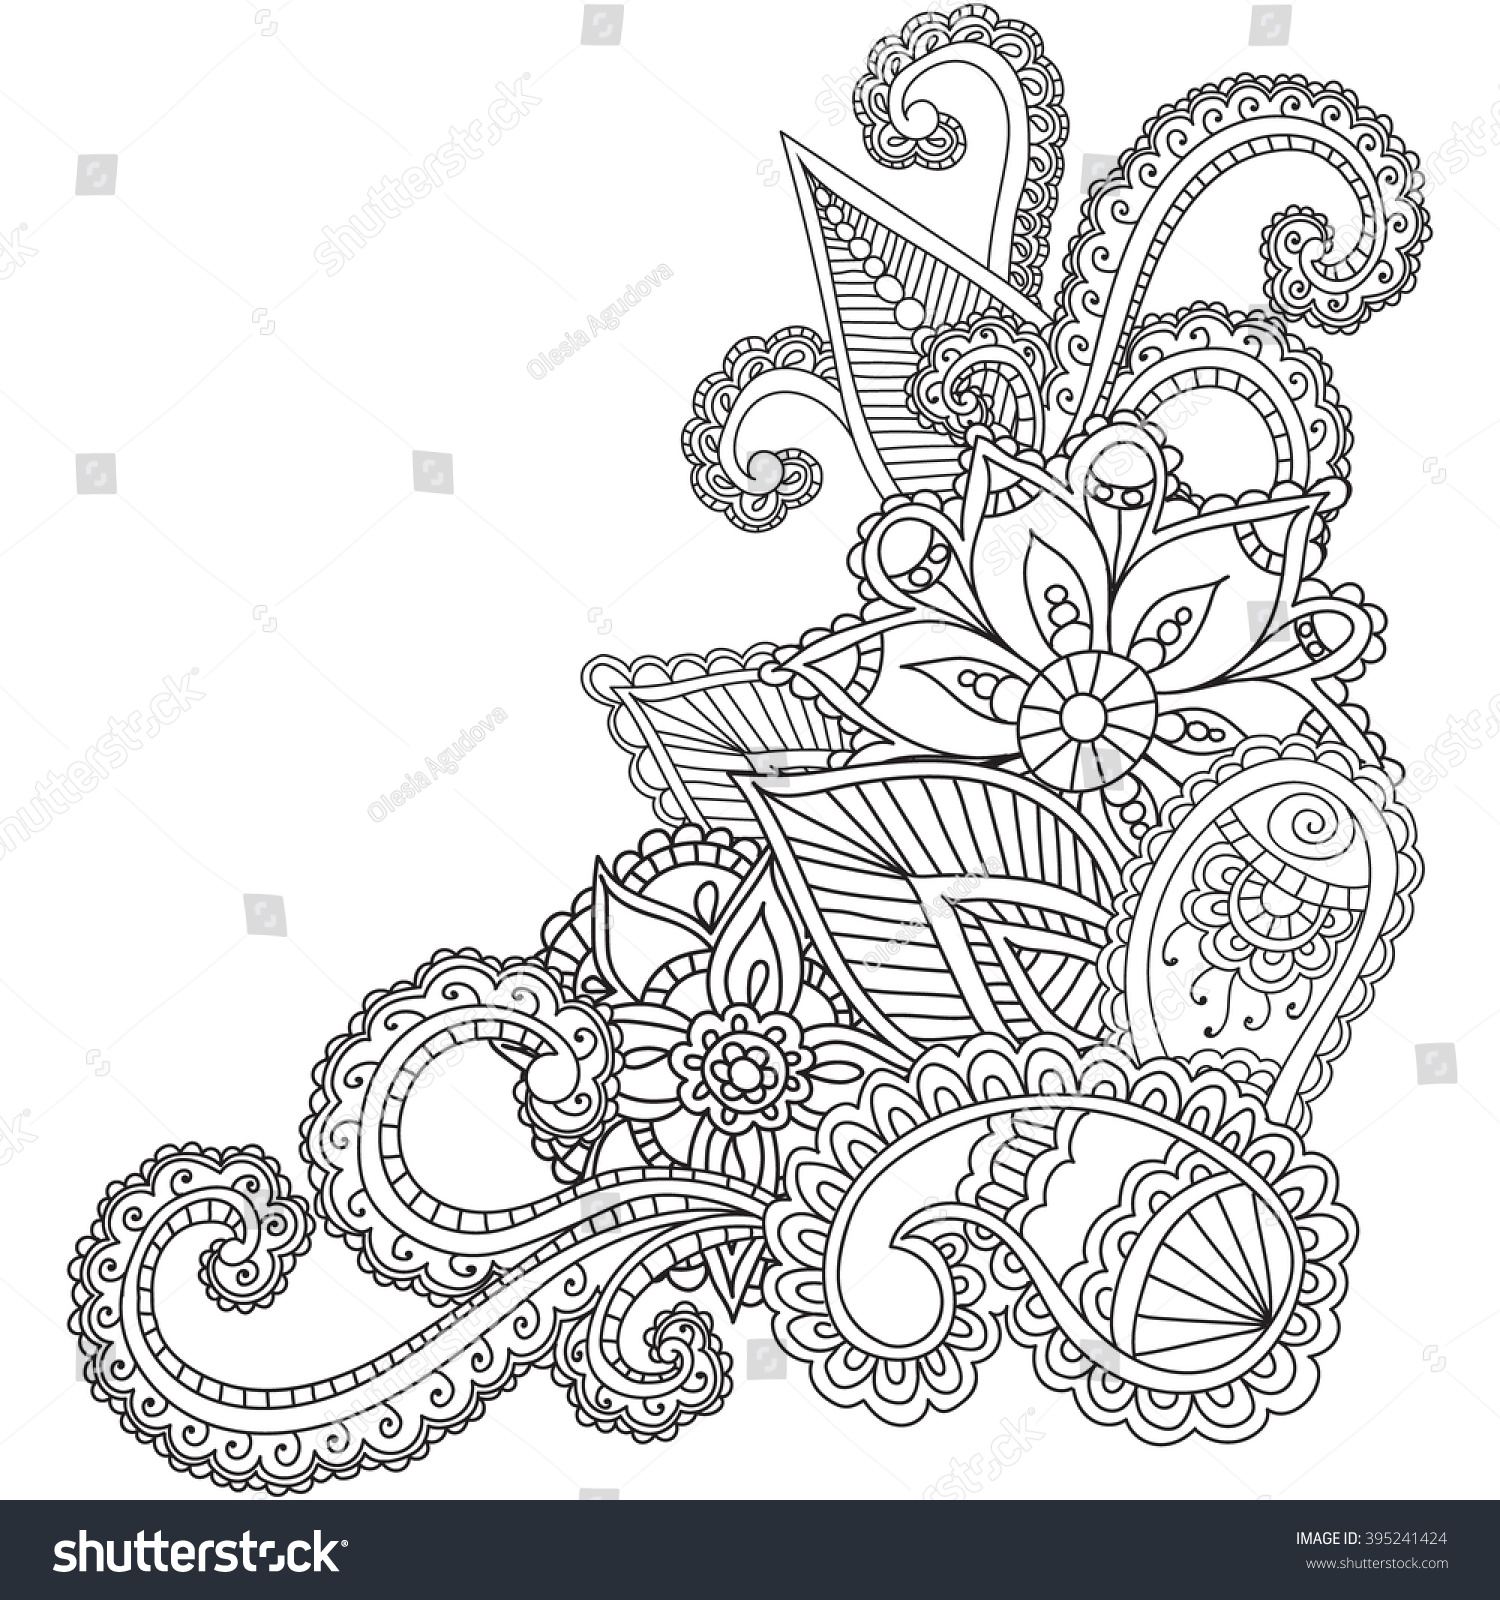 Coloring pages for adults abstract - Coloring Pages For Adults Henna Mehndi Doodles Abstract Floral Paisley Design Elements Mandala